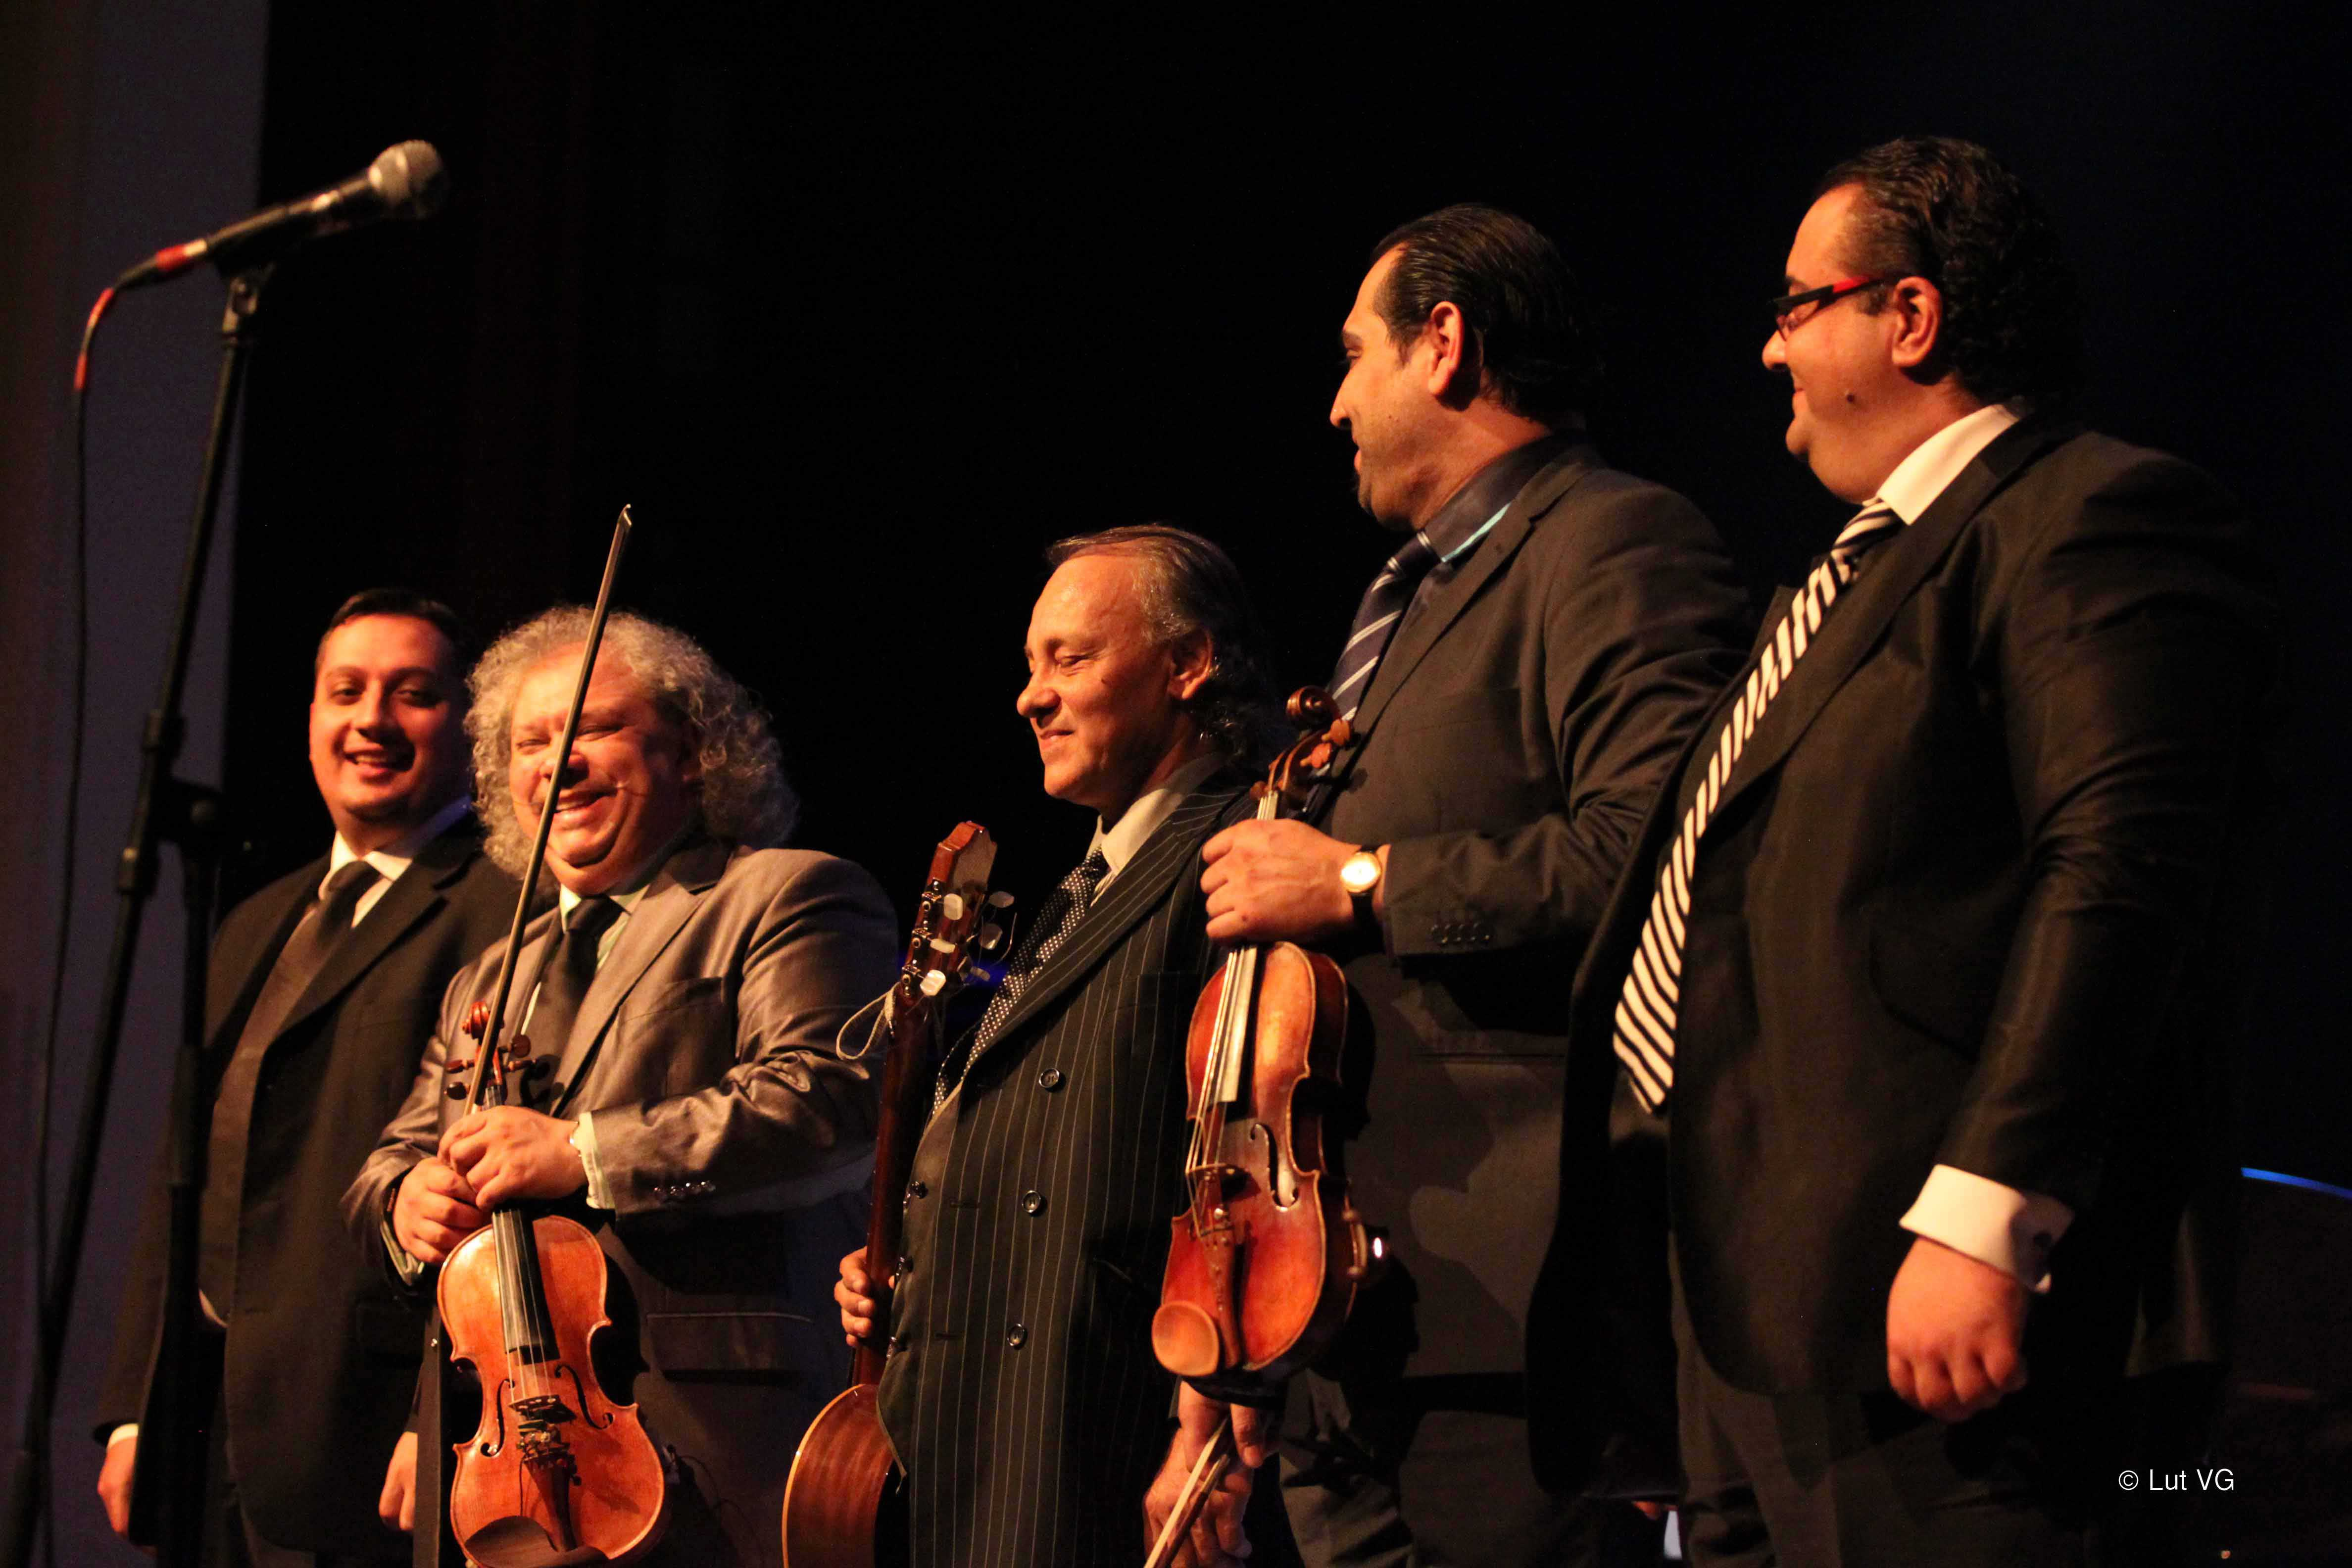 Roby Lakatos and his Group